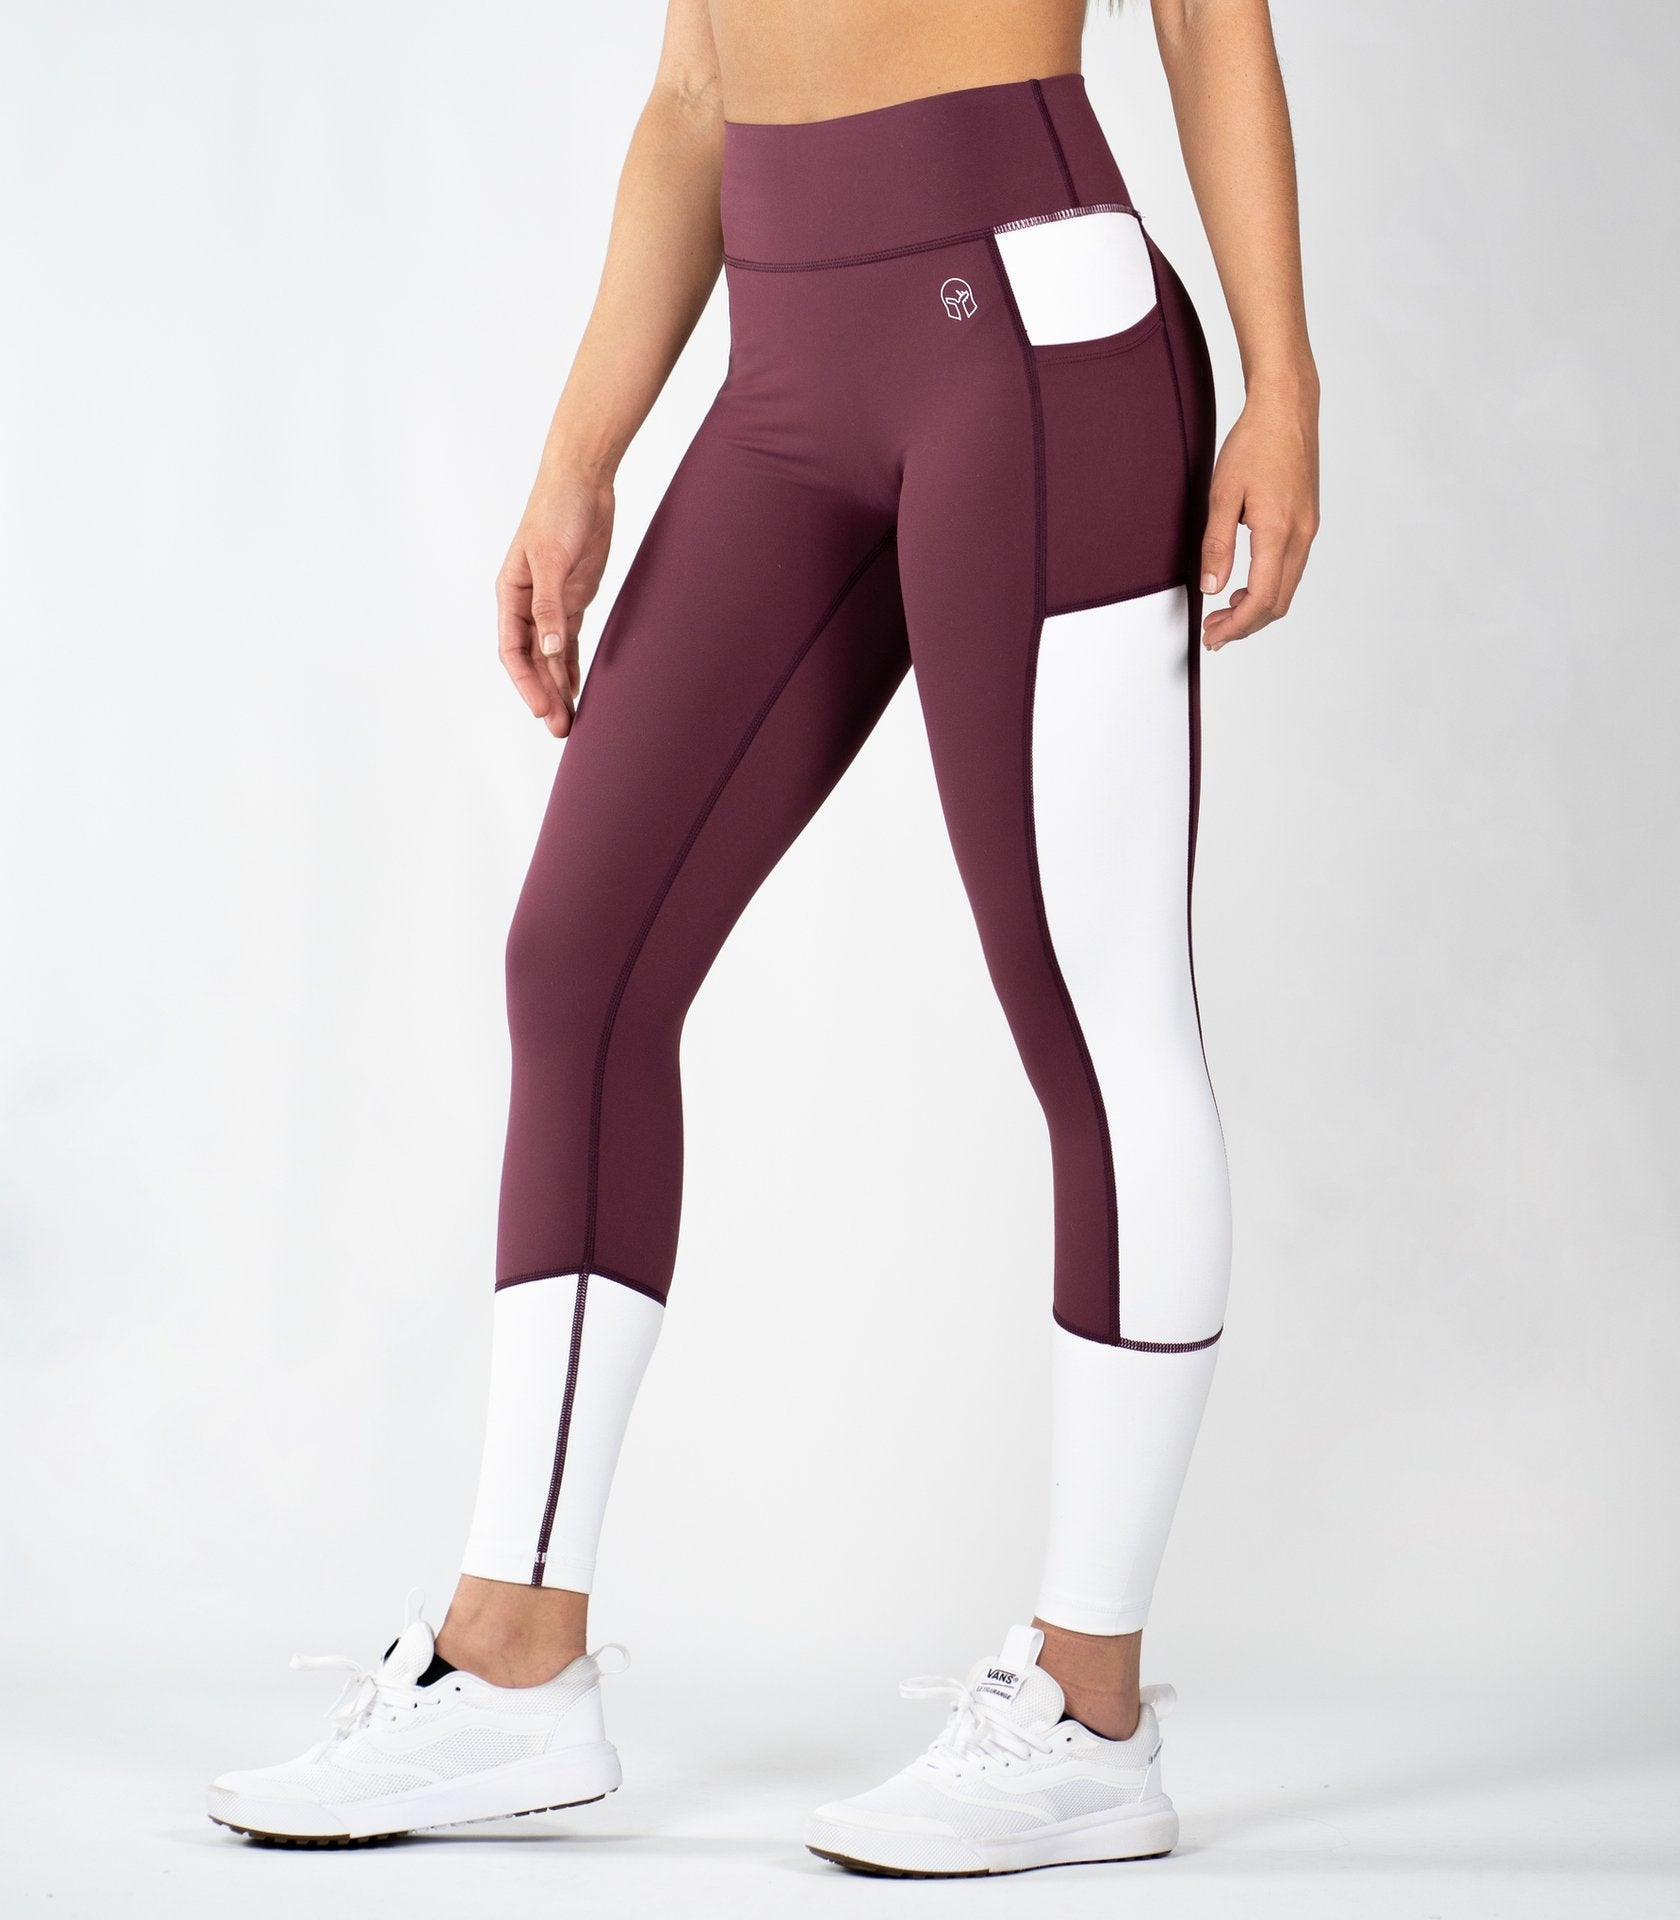 Reina Leggings - Titan